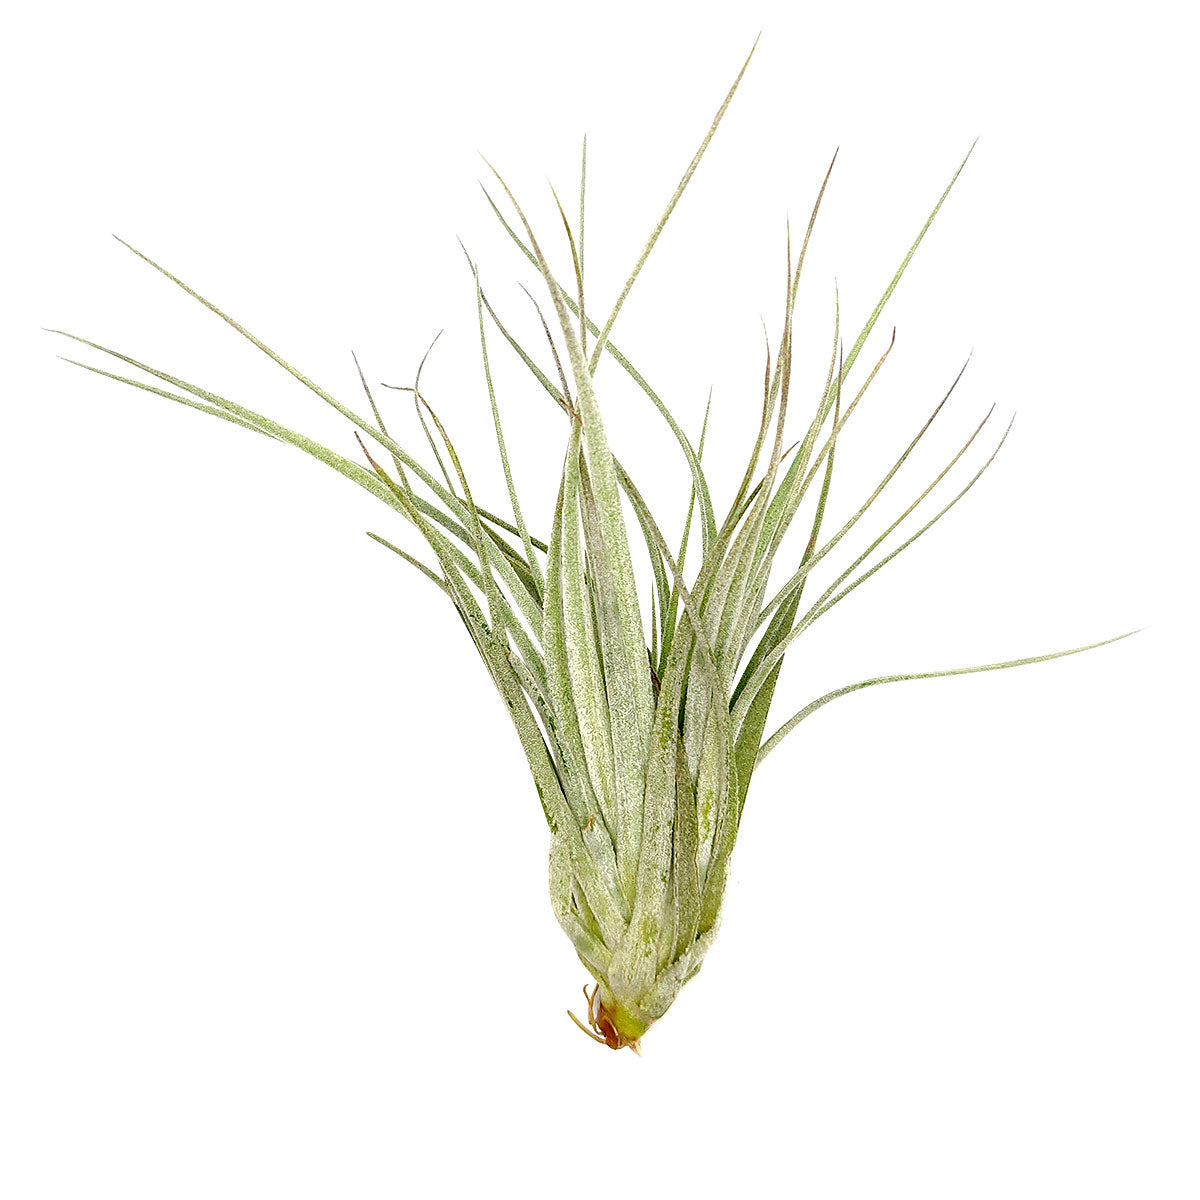 Tillandsia Houston Cotton Candy air plant for sale, unique gift decor ideas, air plant subscription delivery monthly, Tillandsia Houston Cotton Candy with air plant care guide